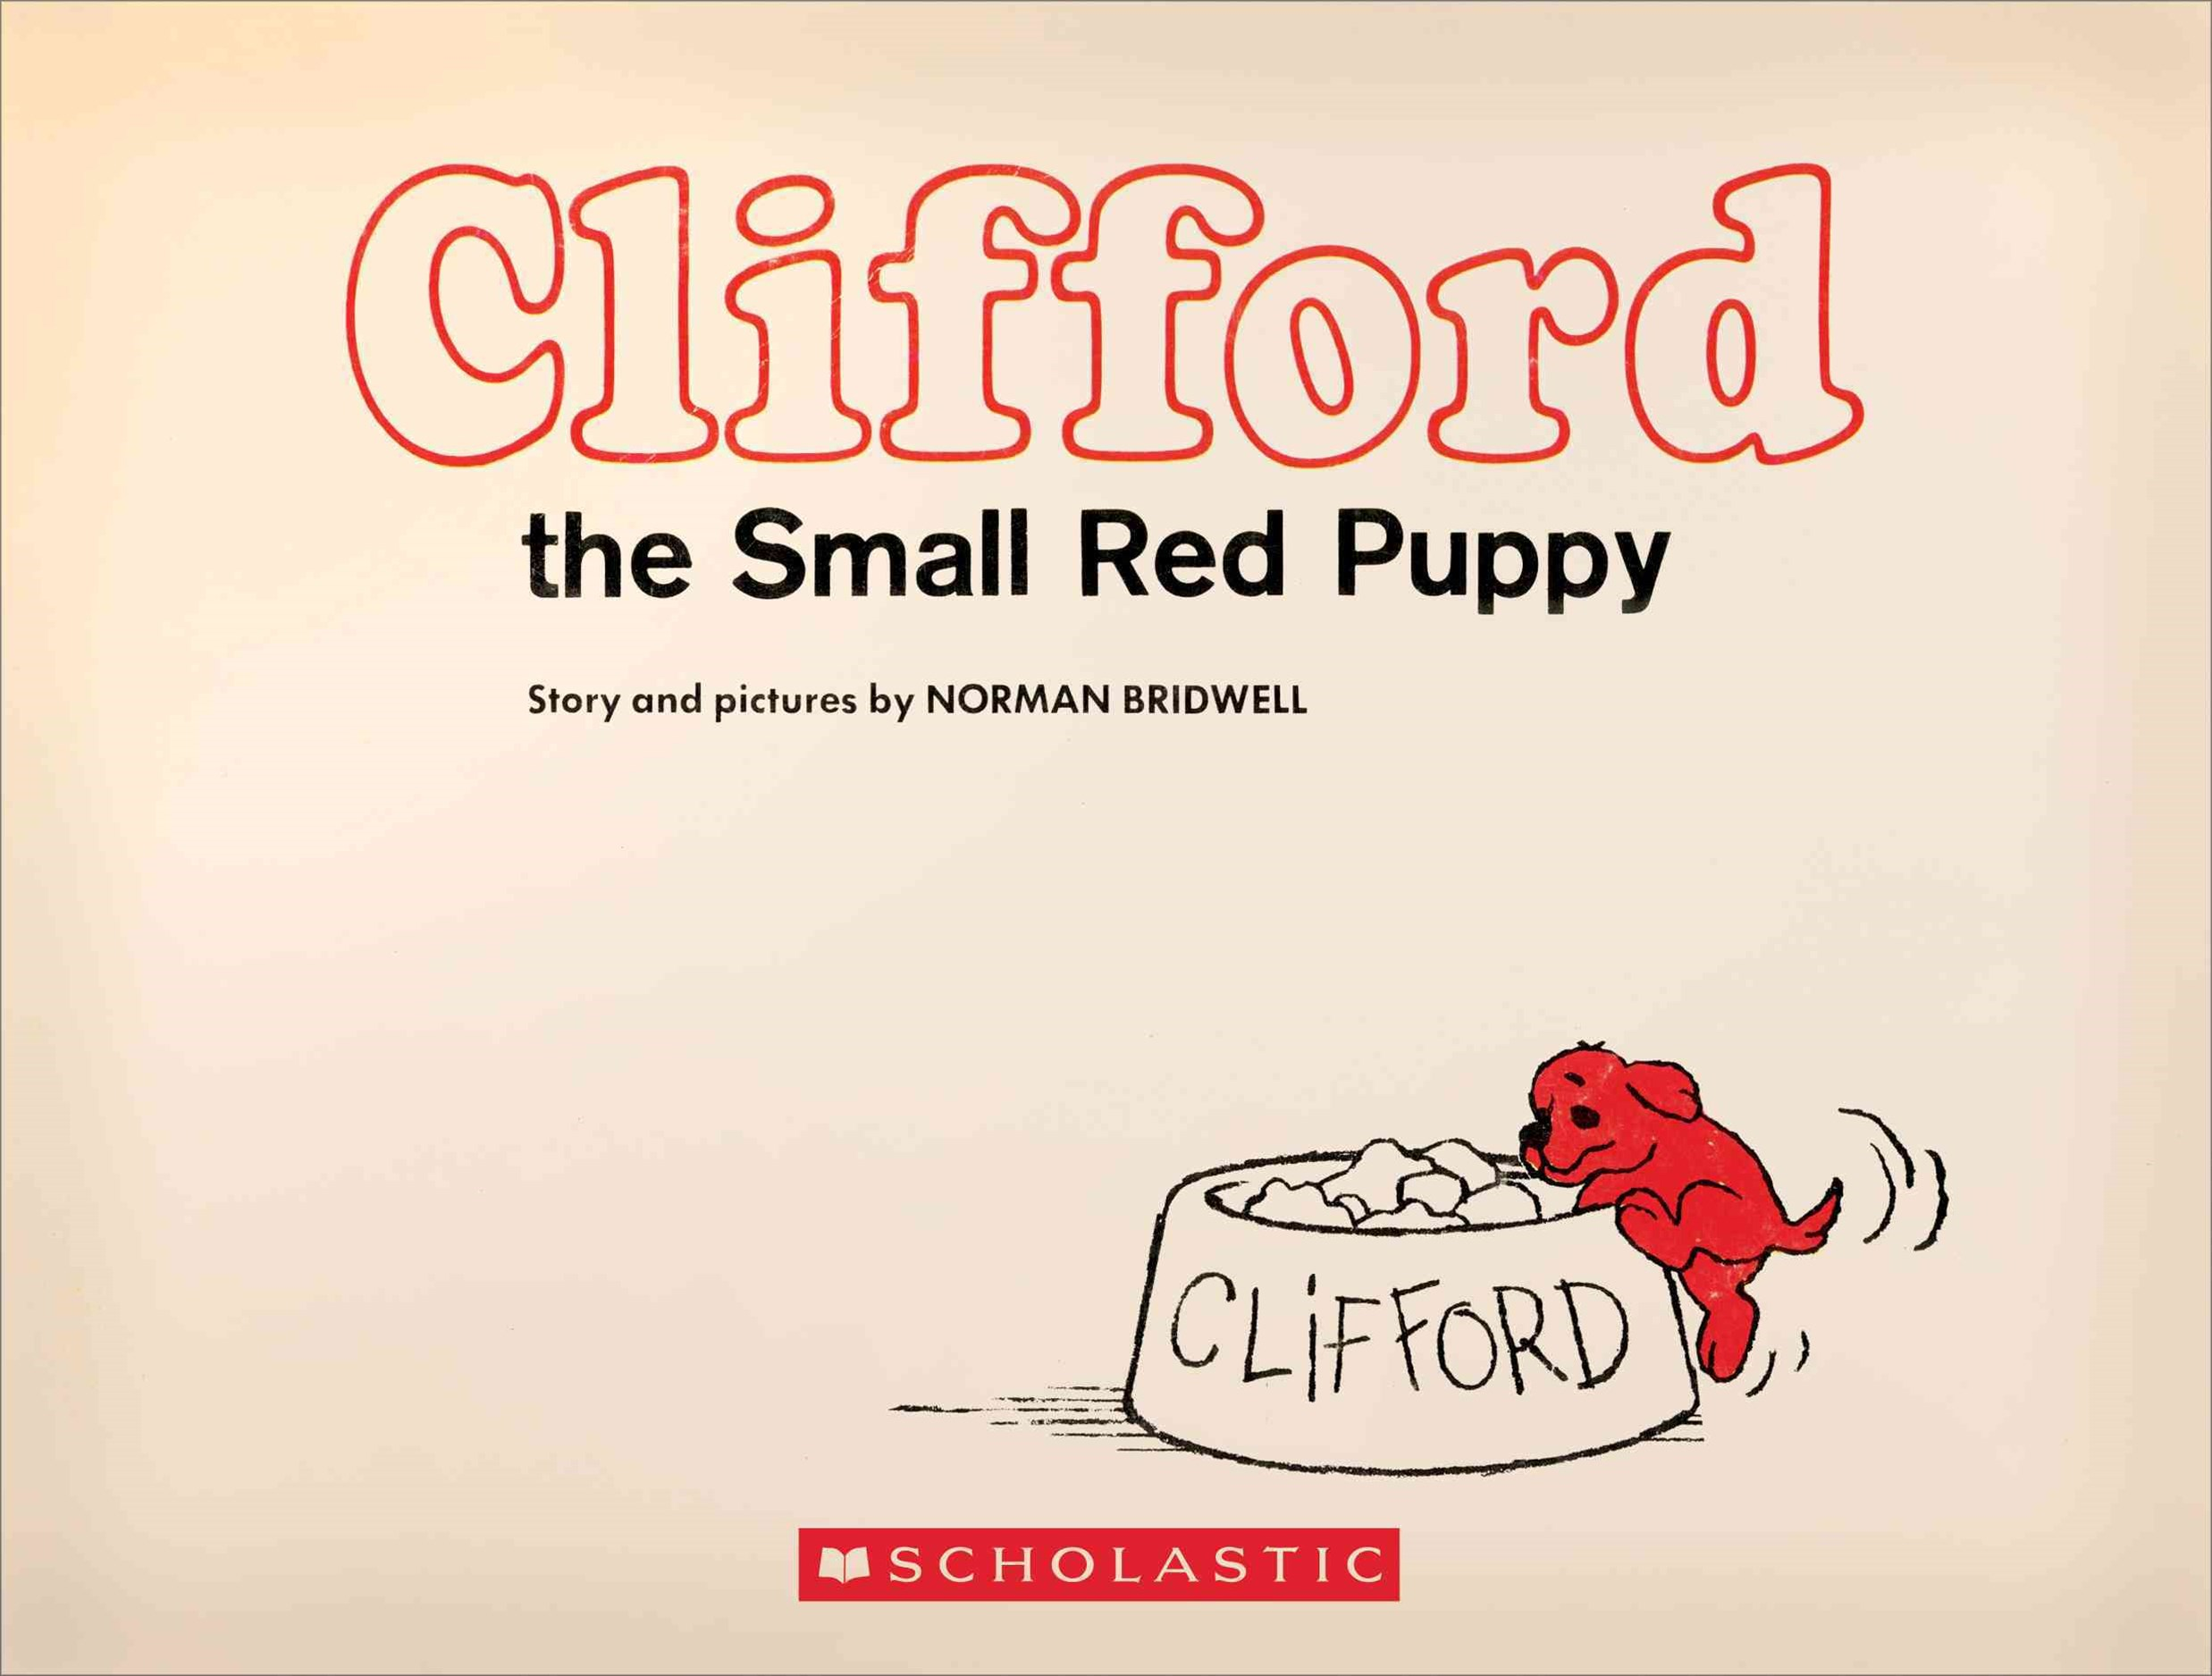 Clifford the Small Red Puppy (Vintage Hardcover Edition)